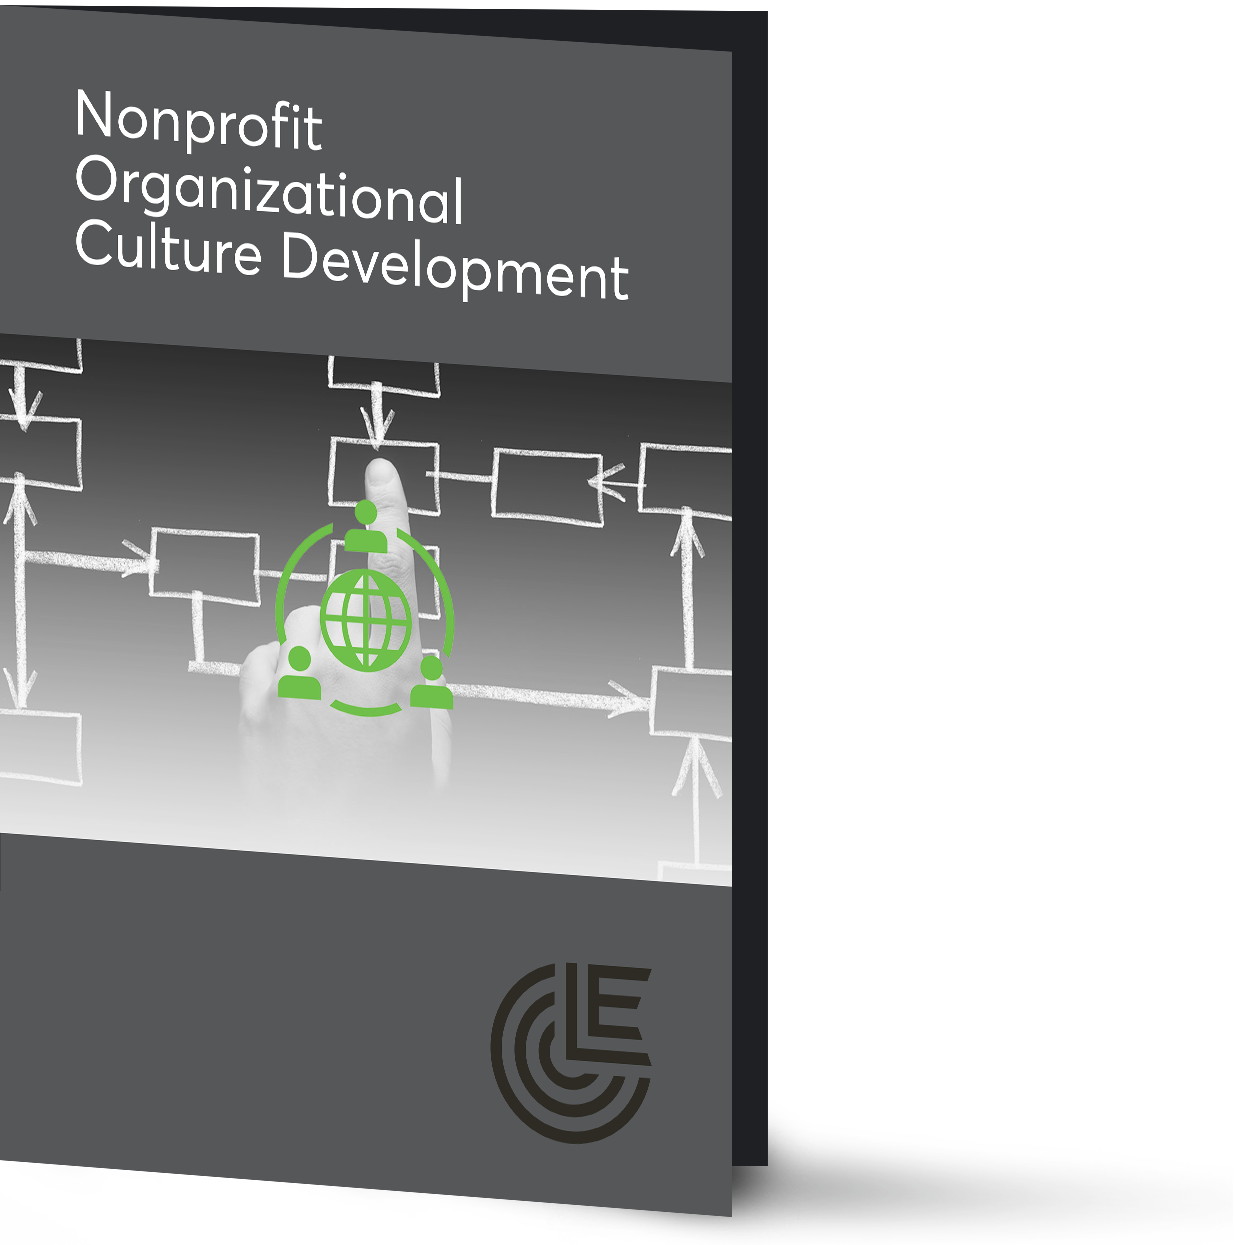 nonprofit-organizational-culture-development-2